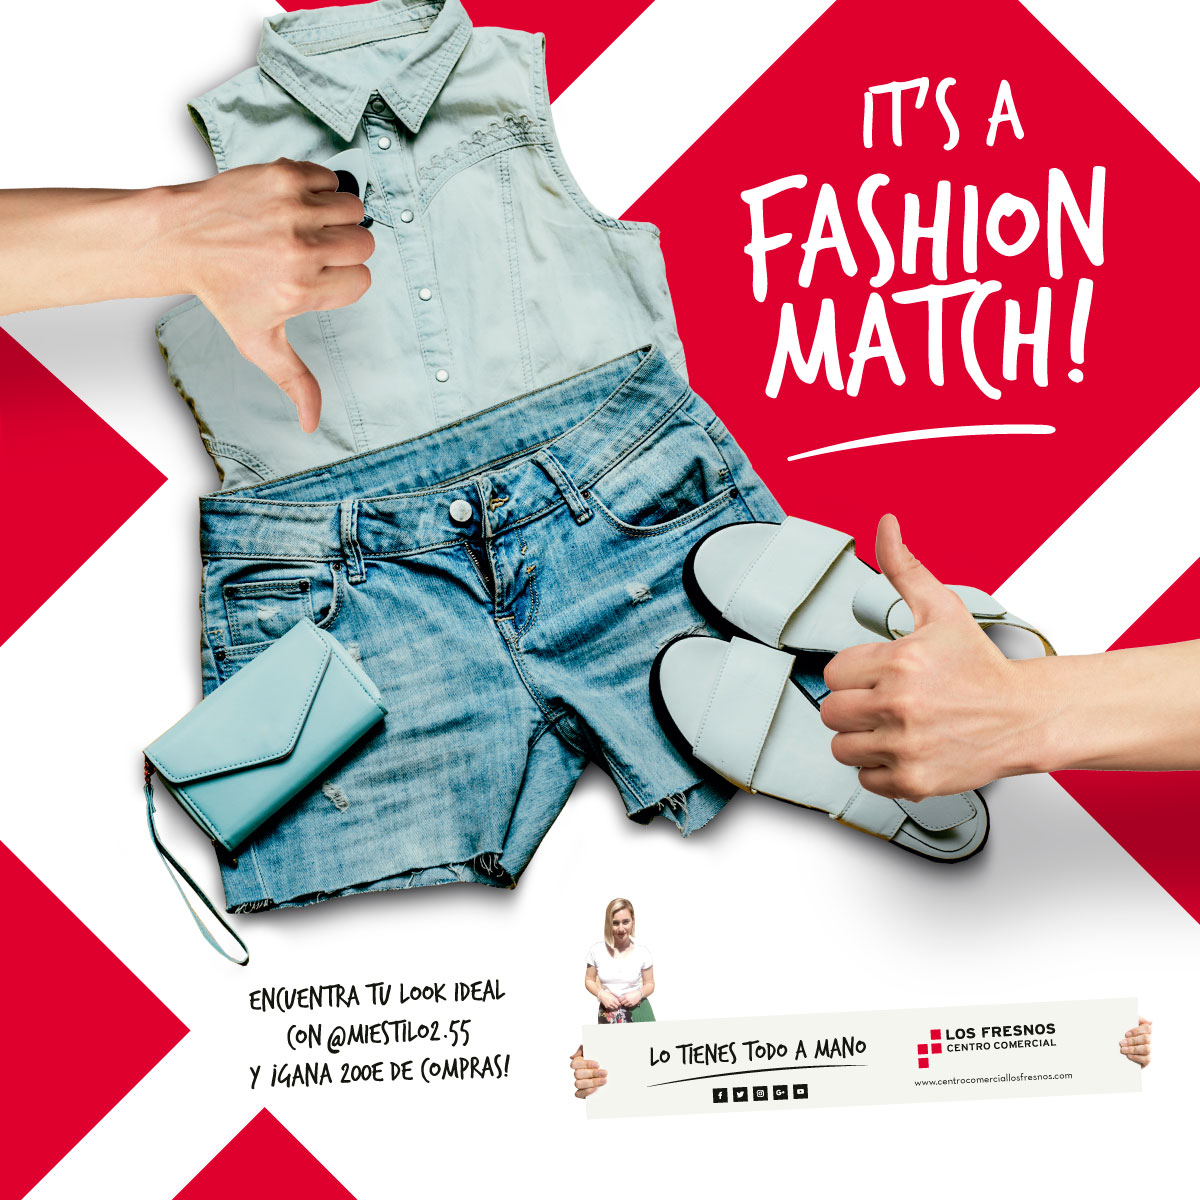 Ig_Fashion_Match